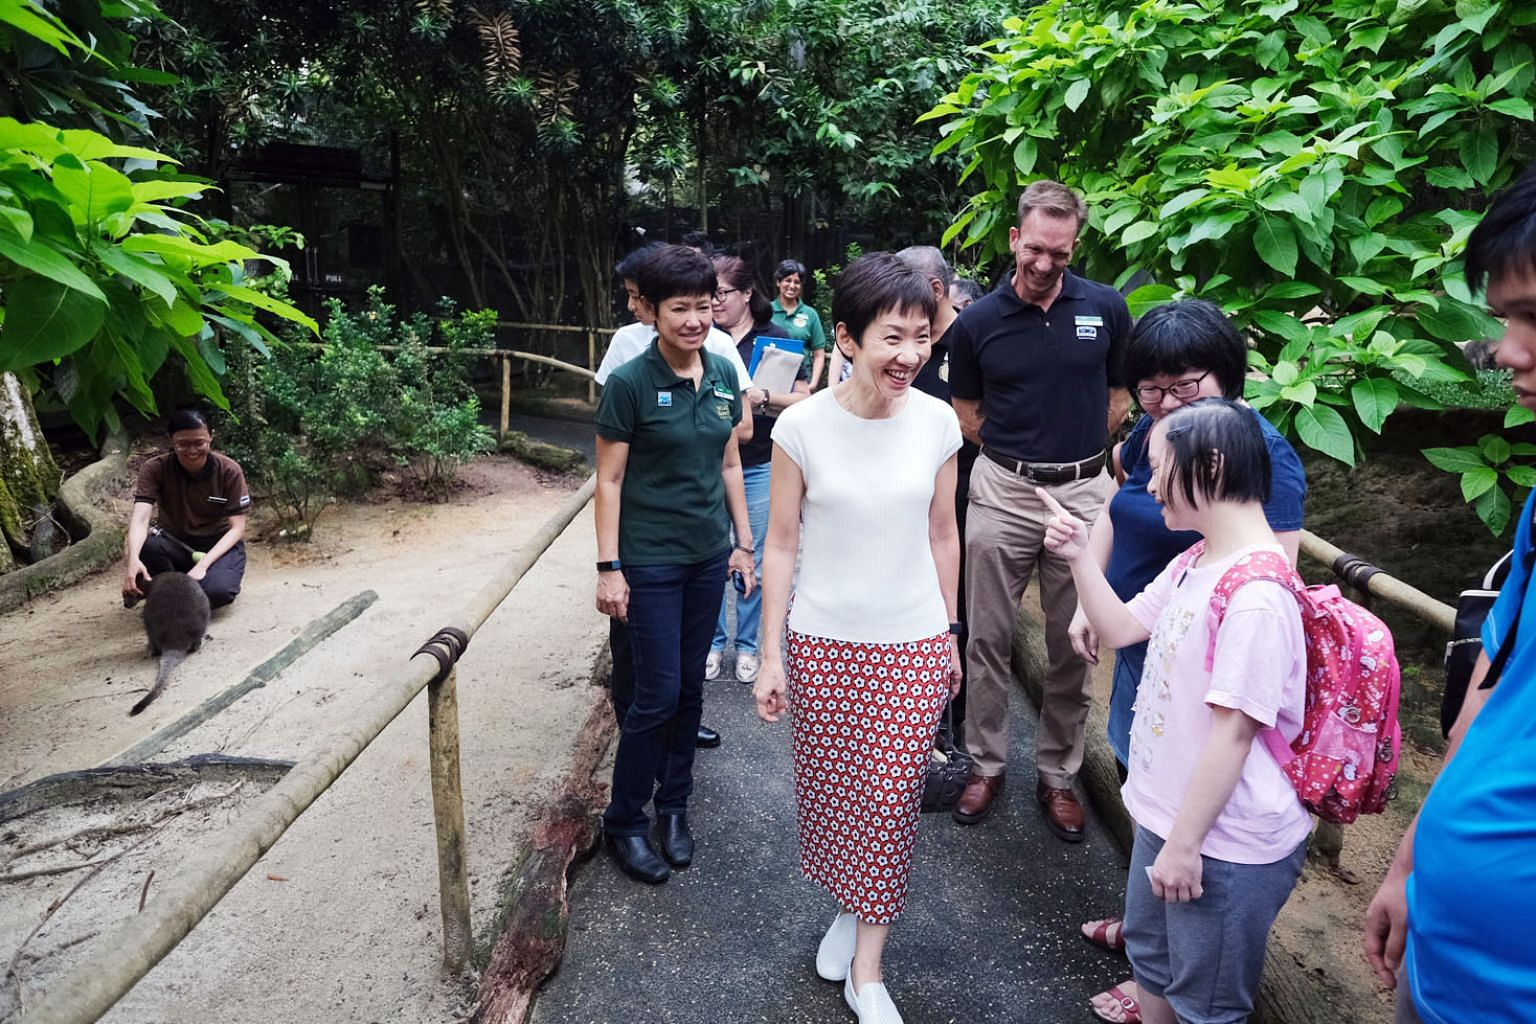 Ms Vivian Wong, 31, a beneficiary of the Movement for the Intellectually Disabled of Singapore, chatting with Minister for Culture, Community and Youth Grace Fu at the Night Safari's wallaby enclosure yesterday. Ms Wong was one of about 50 beneficiar